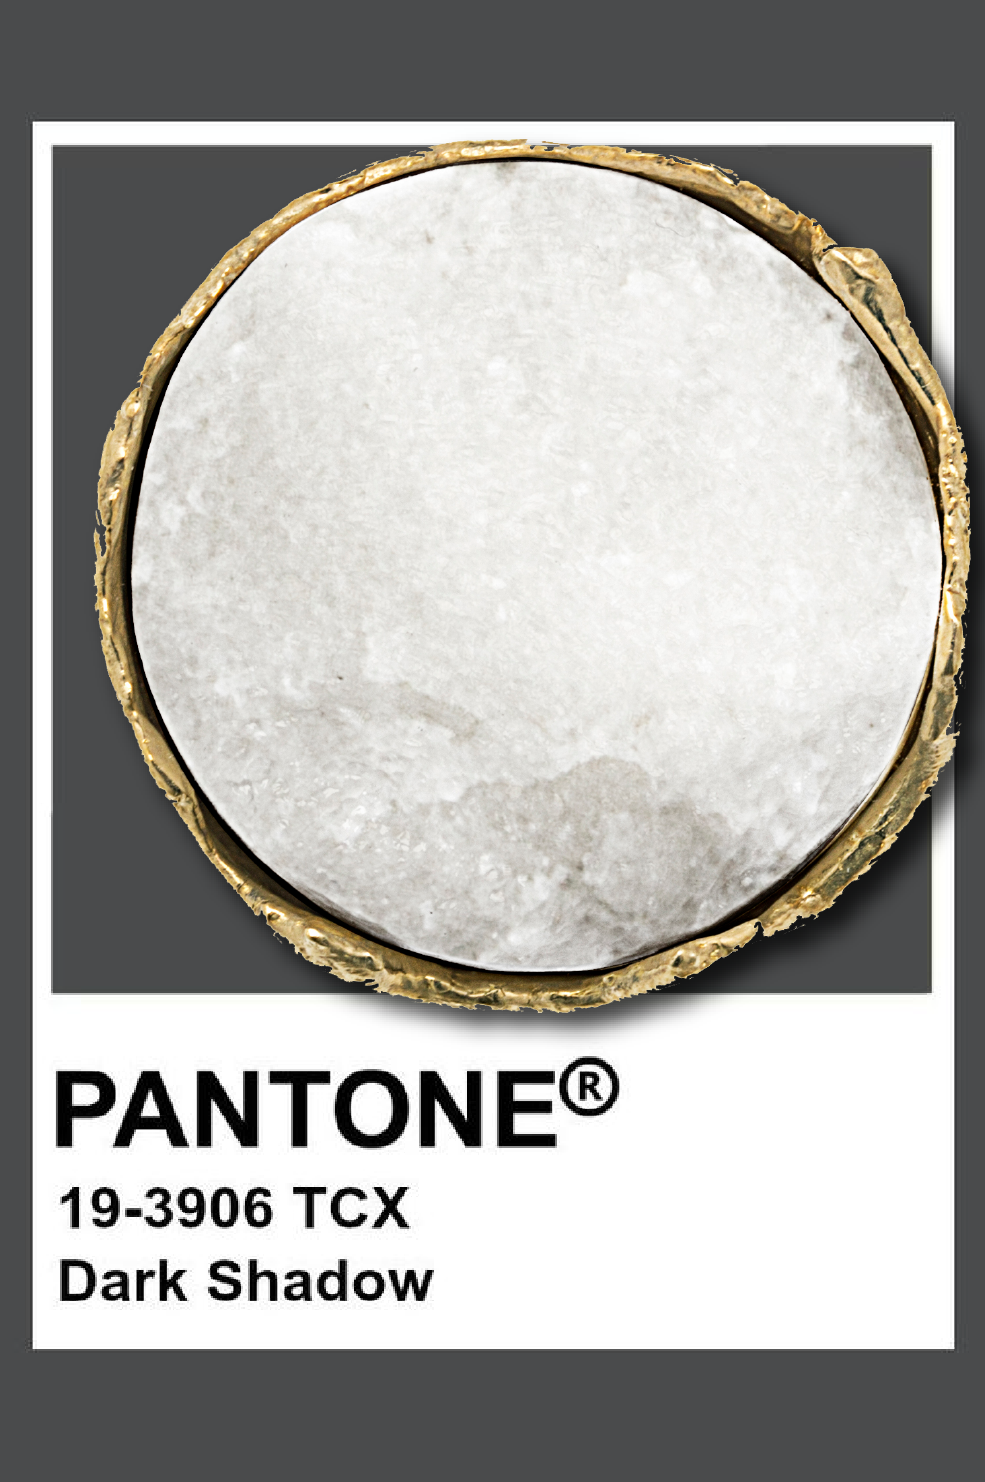 Pantone Color of The Year: PullCast Edition pantone color of the year 2020 Pantone Color of The Year 2020: PullCast Edition 325b97527fbd309fa4033ddac514937b 05 e1576077240146